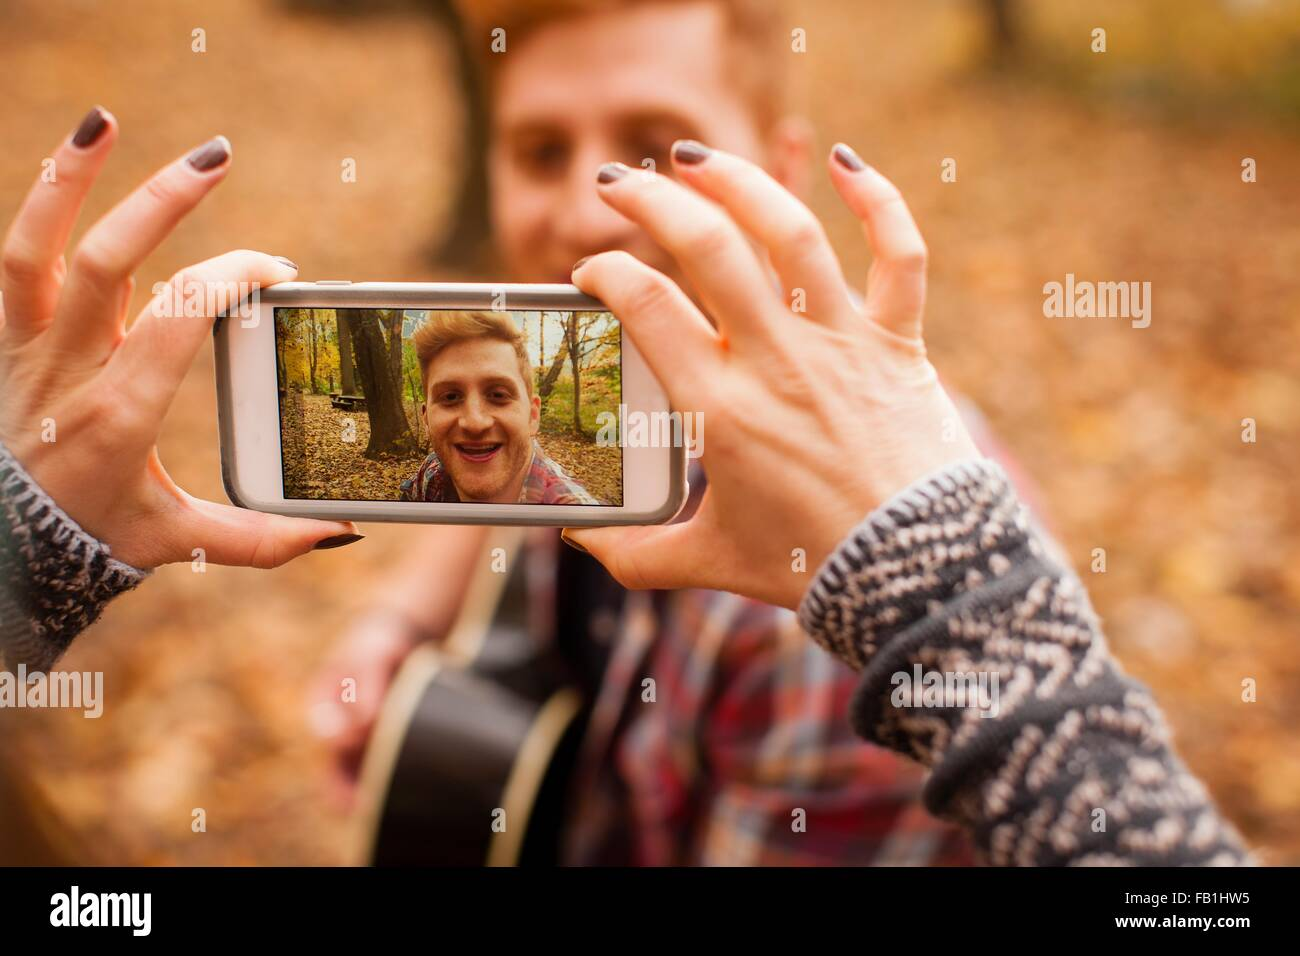 Hands of young woman photographing boyfriend on smartphone in autumn forest - Stock Image